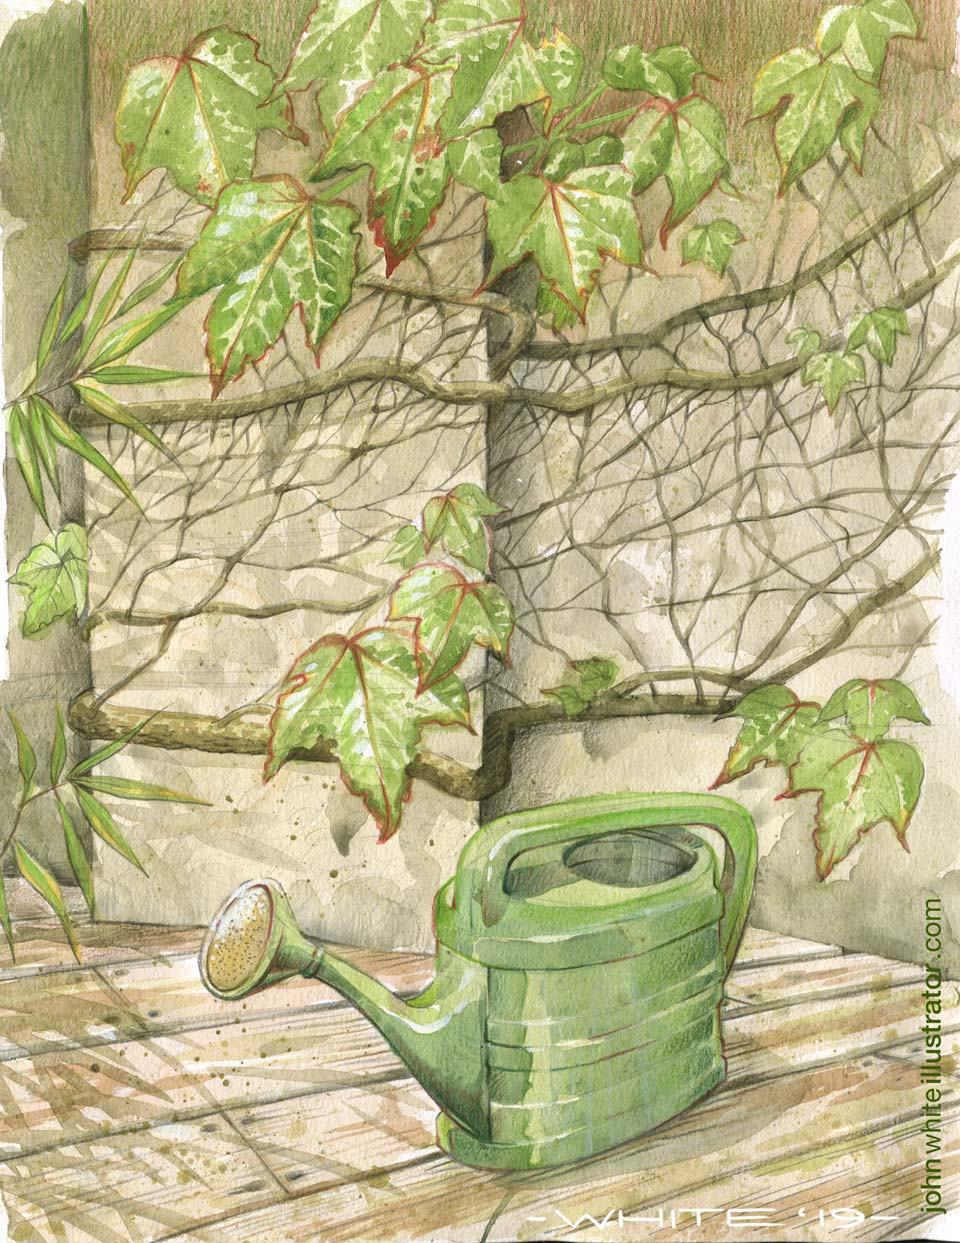 watercolour painting of boston ivy